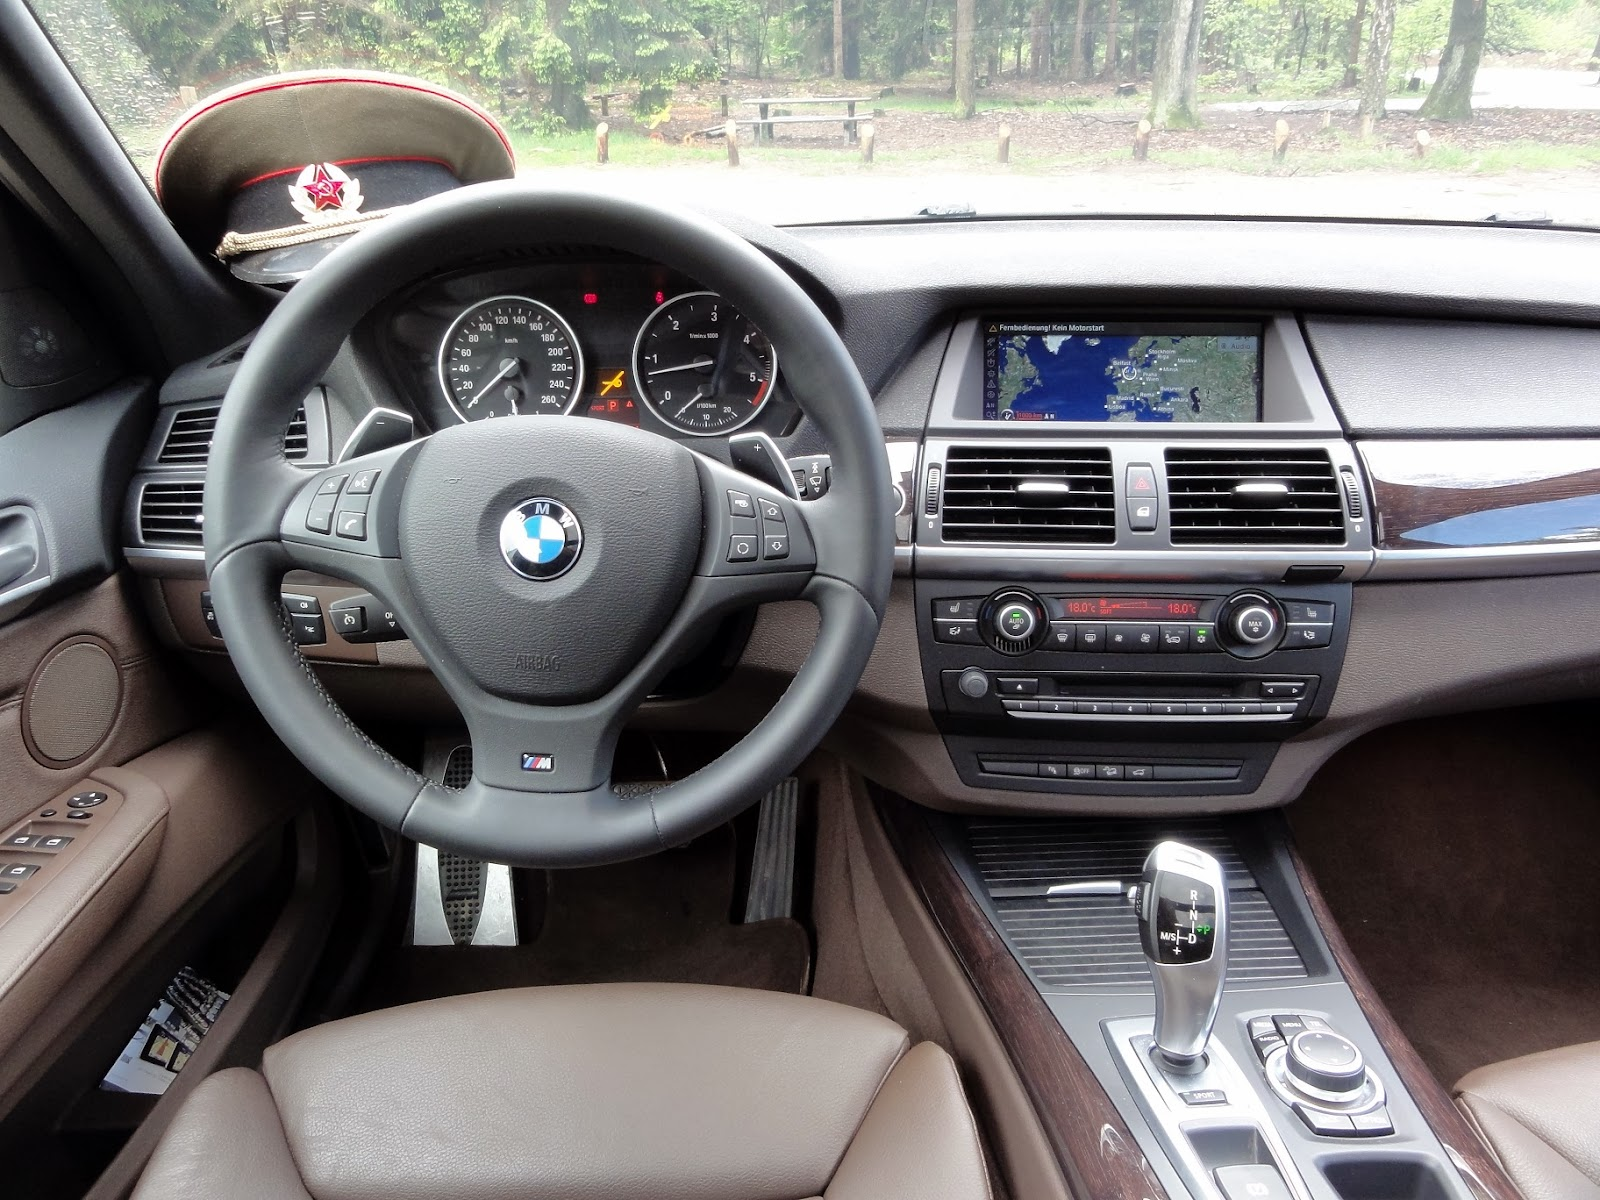 Bmw X5 Interior >> Guitigefilmpjes: Picture update: BMW X5 xDrive30d LCI (2012 / E70)